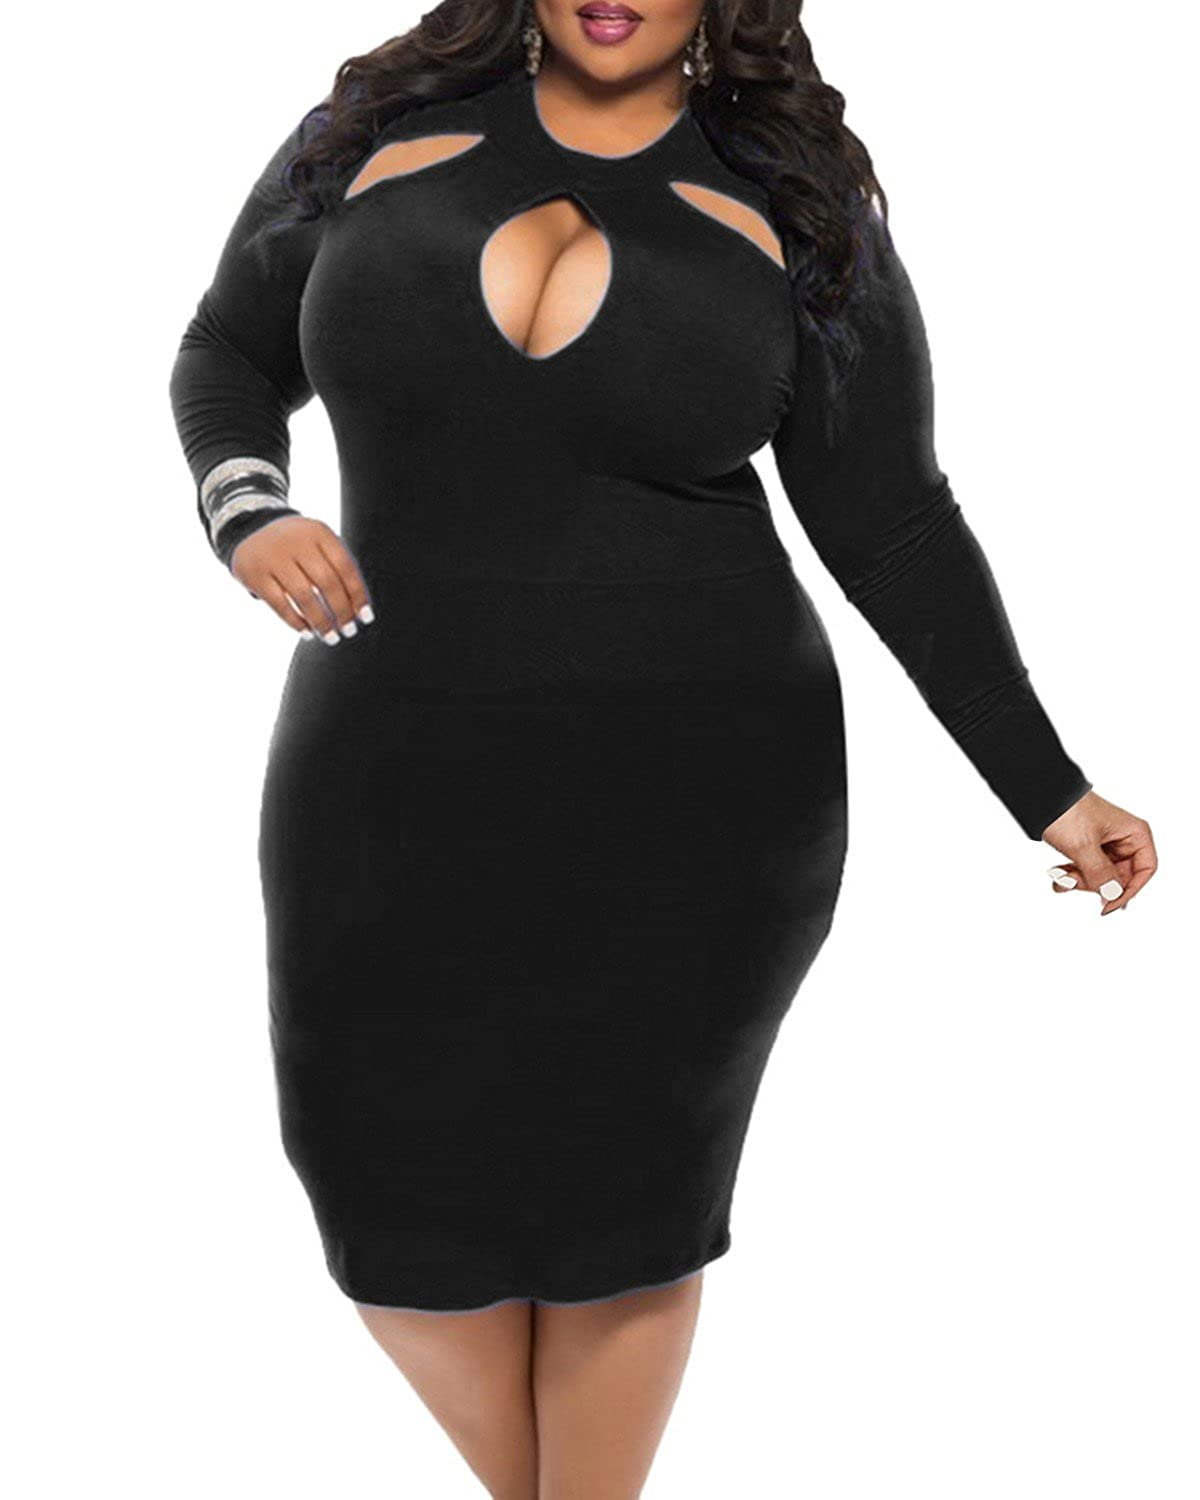 BIUBIU Womens Plus Size Sexy Long Sleeve Club Bodycon Bandage Midi Dress L-4XL